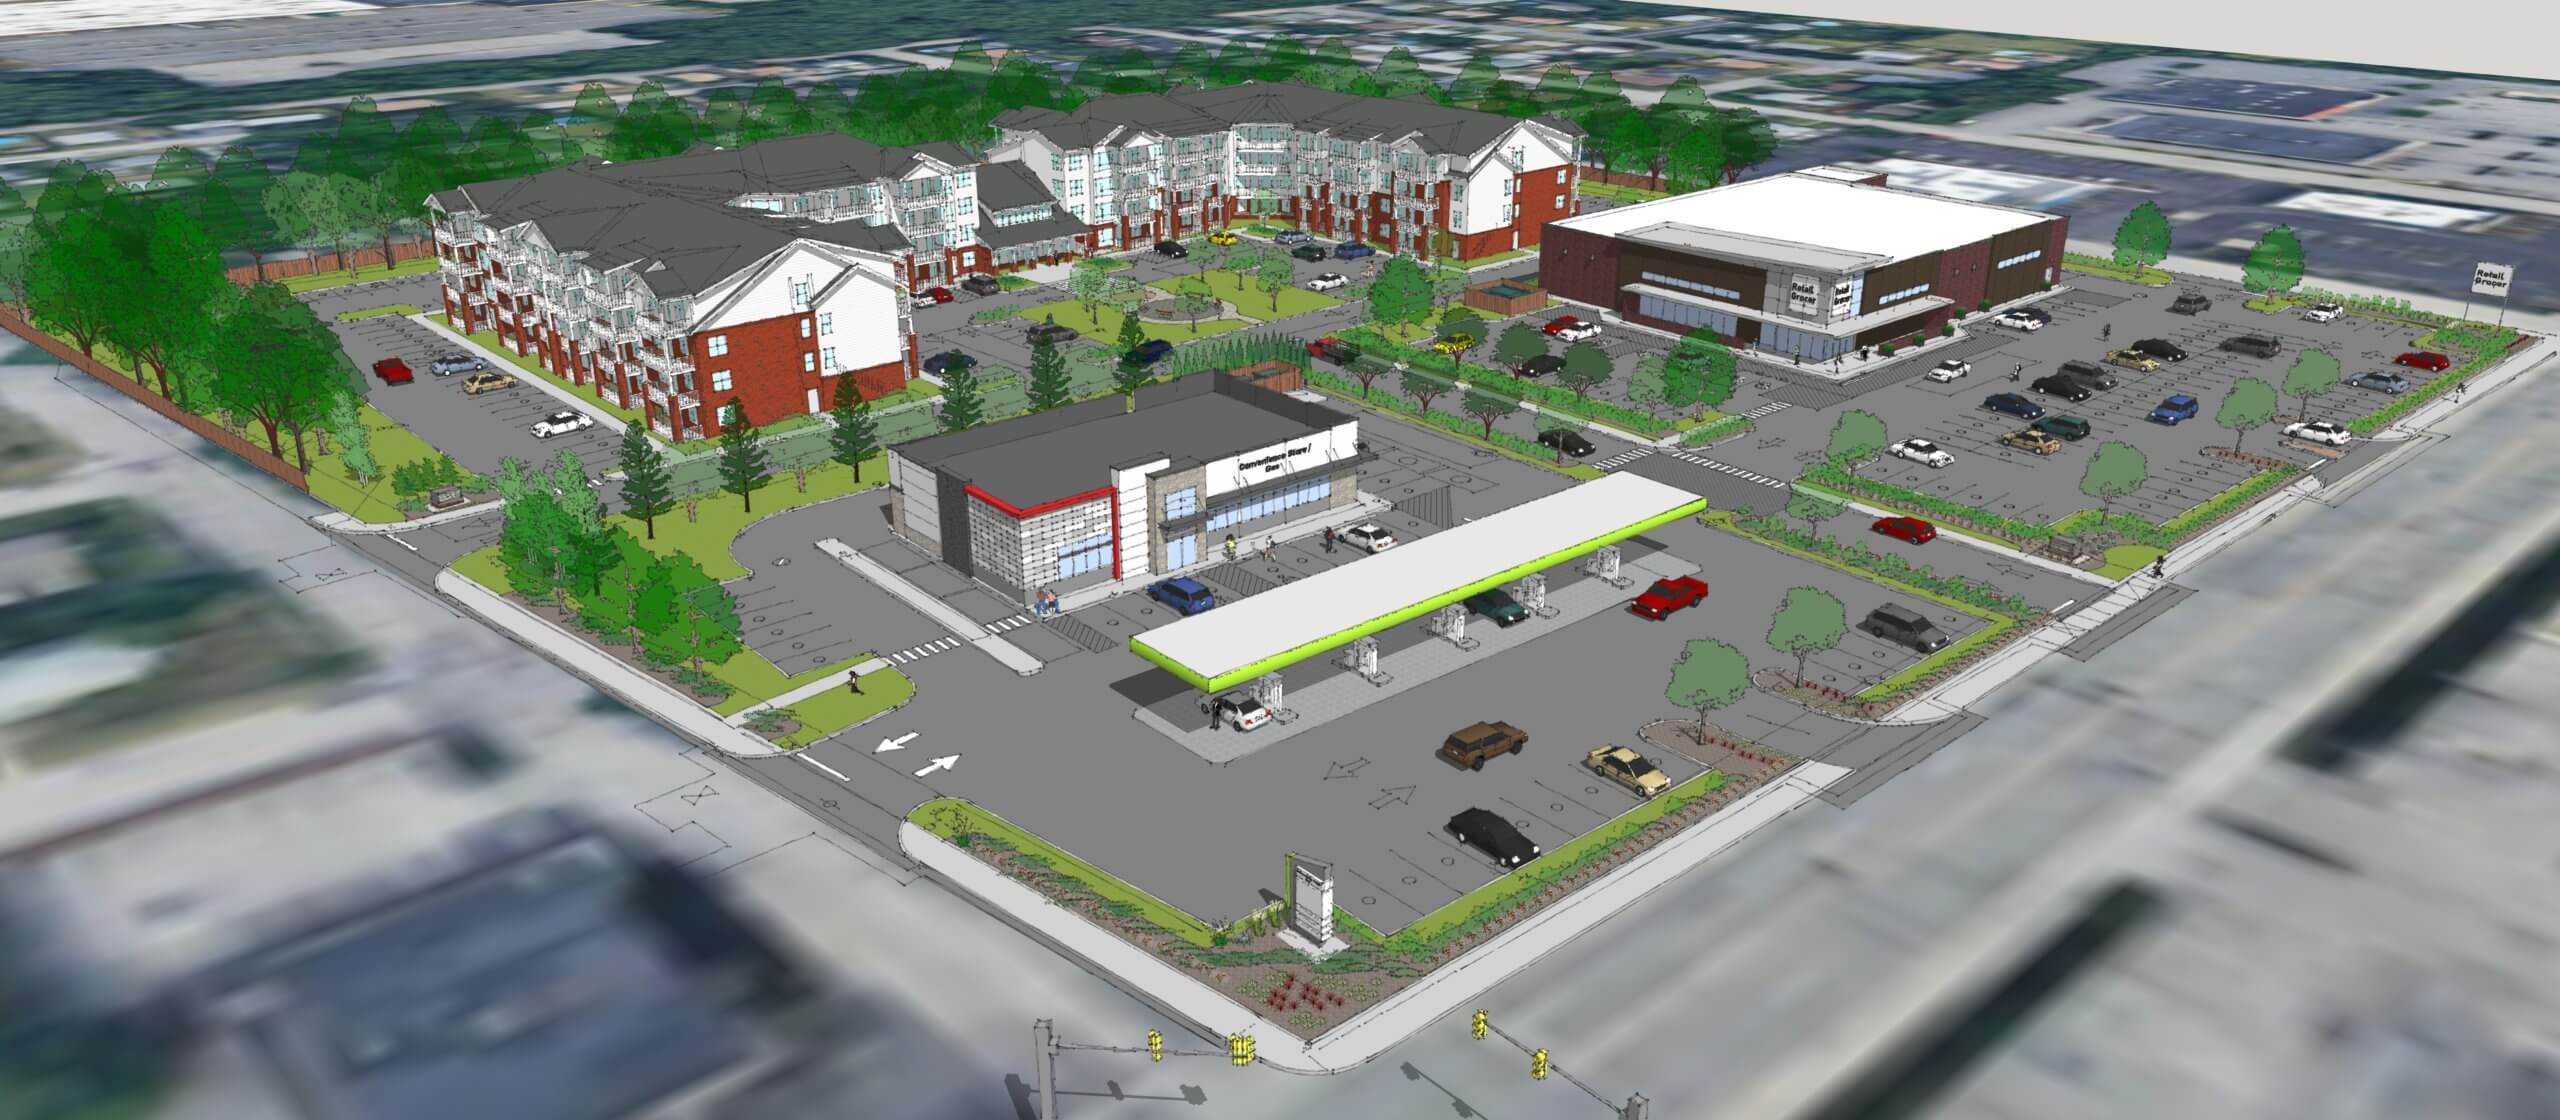 East Providence Planning Board approves 'Newport Center' mixed-use project 1